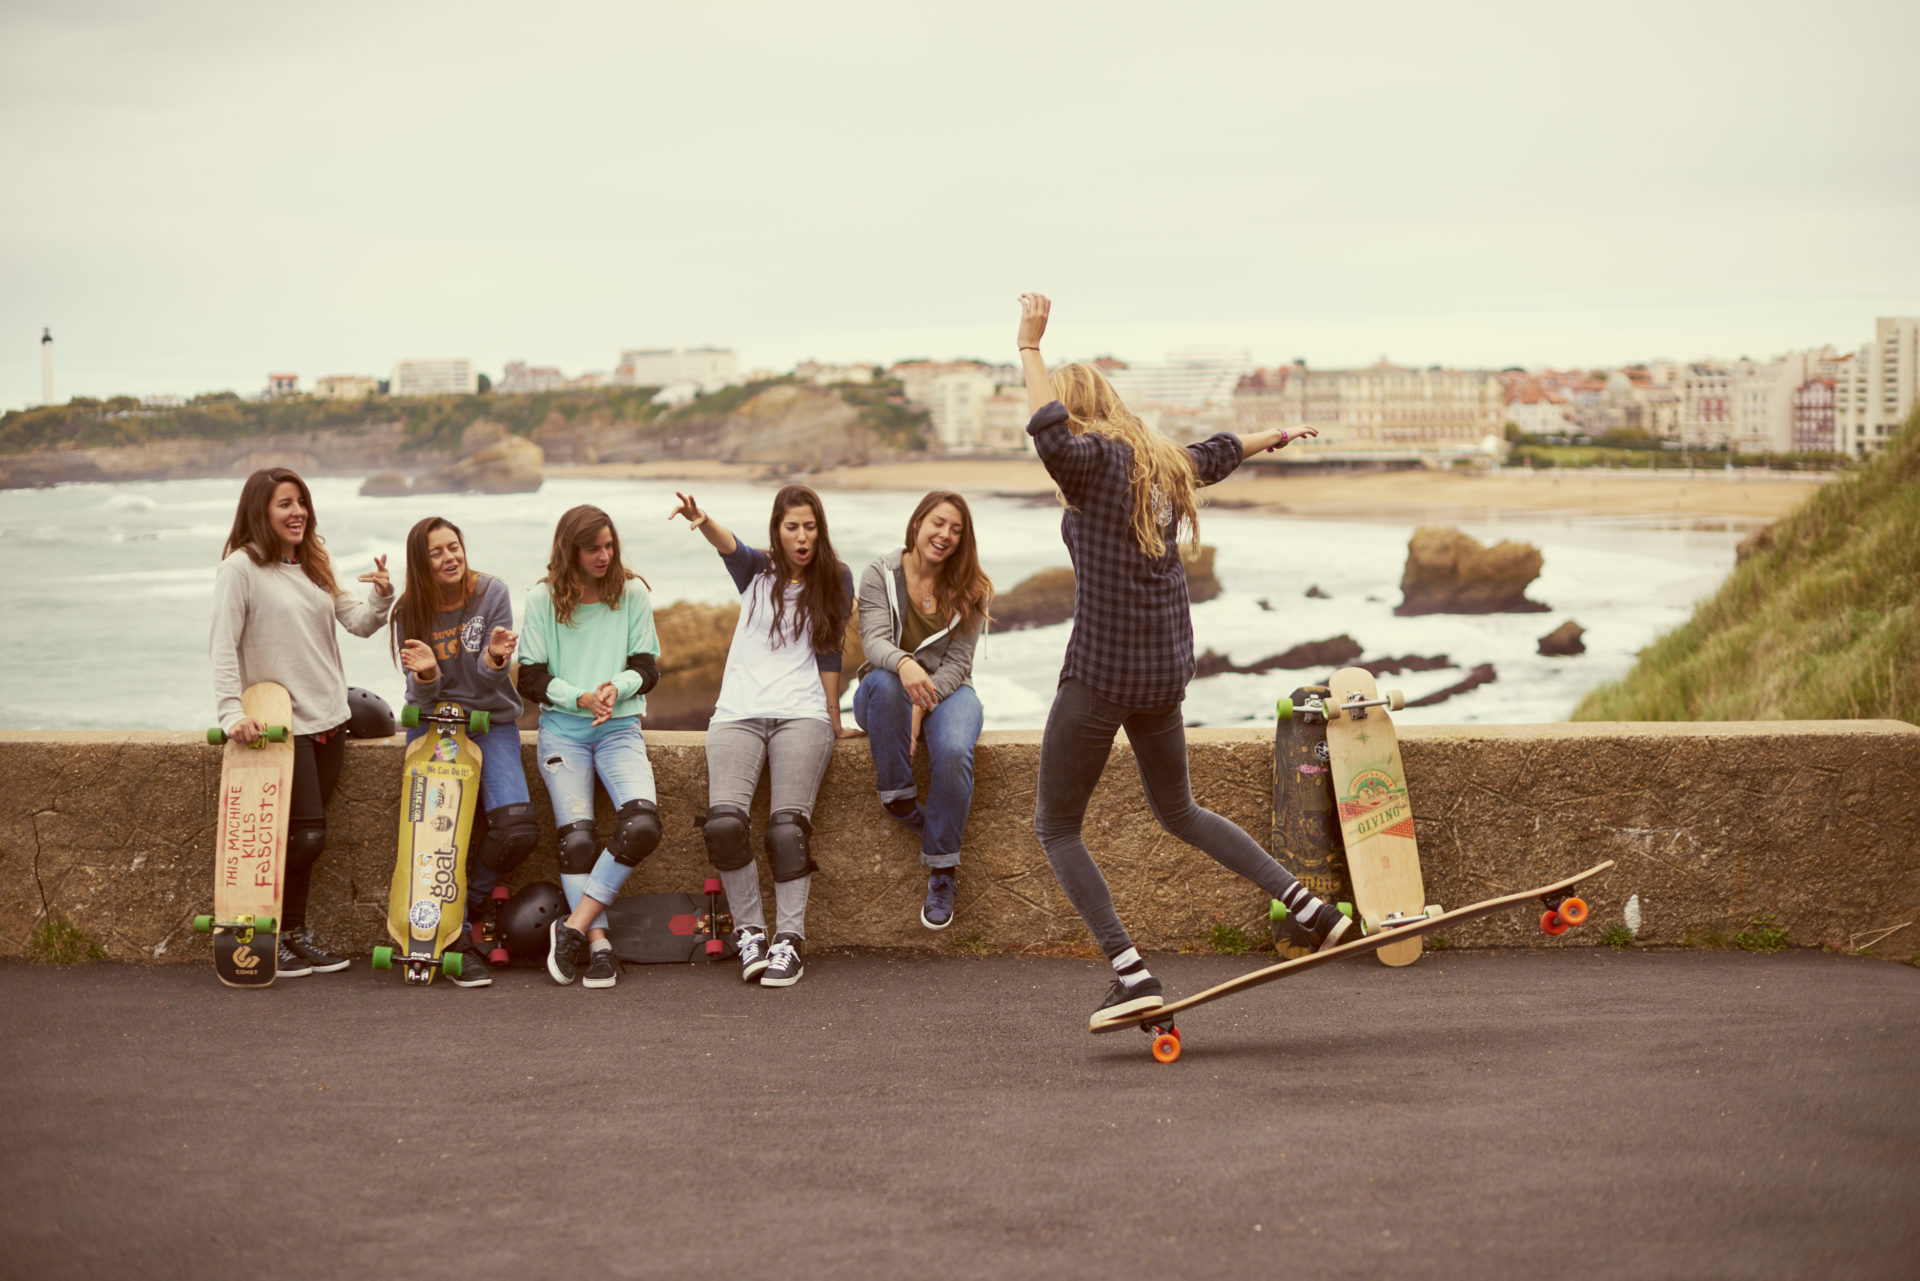 longboard girls crew, bouygues, telecom, france, longboarding, skateboarding, skate, girls, women, strong, rad, cool, magnifique, cool ads, advertisement, ishtar backlund, valeria kechichian, lyde begue, noelia otegui, femke bosma, eider walls, ty evans, theo gosselin, BETC, Paris, Phantasm, production, pyrenees, downhill, biarritz, surf, beach summer, friends, friendship, sun, sunset, crazy